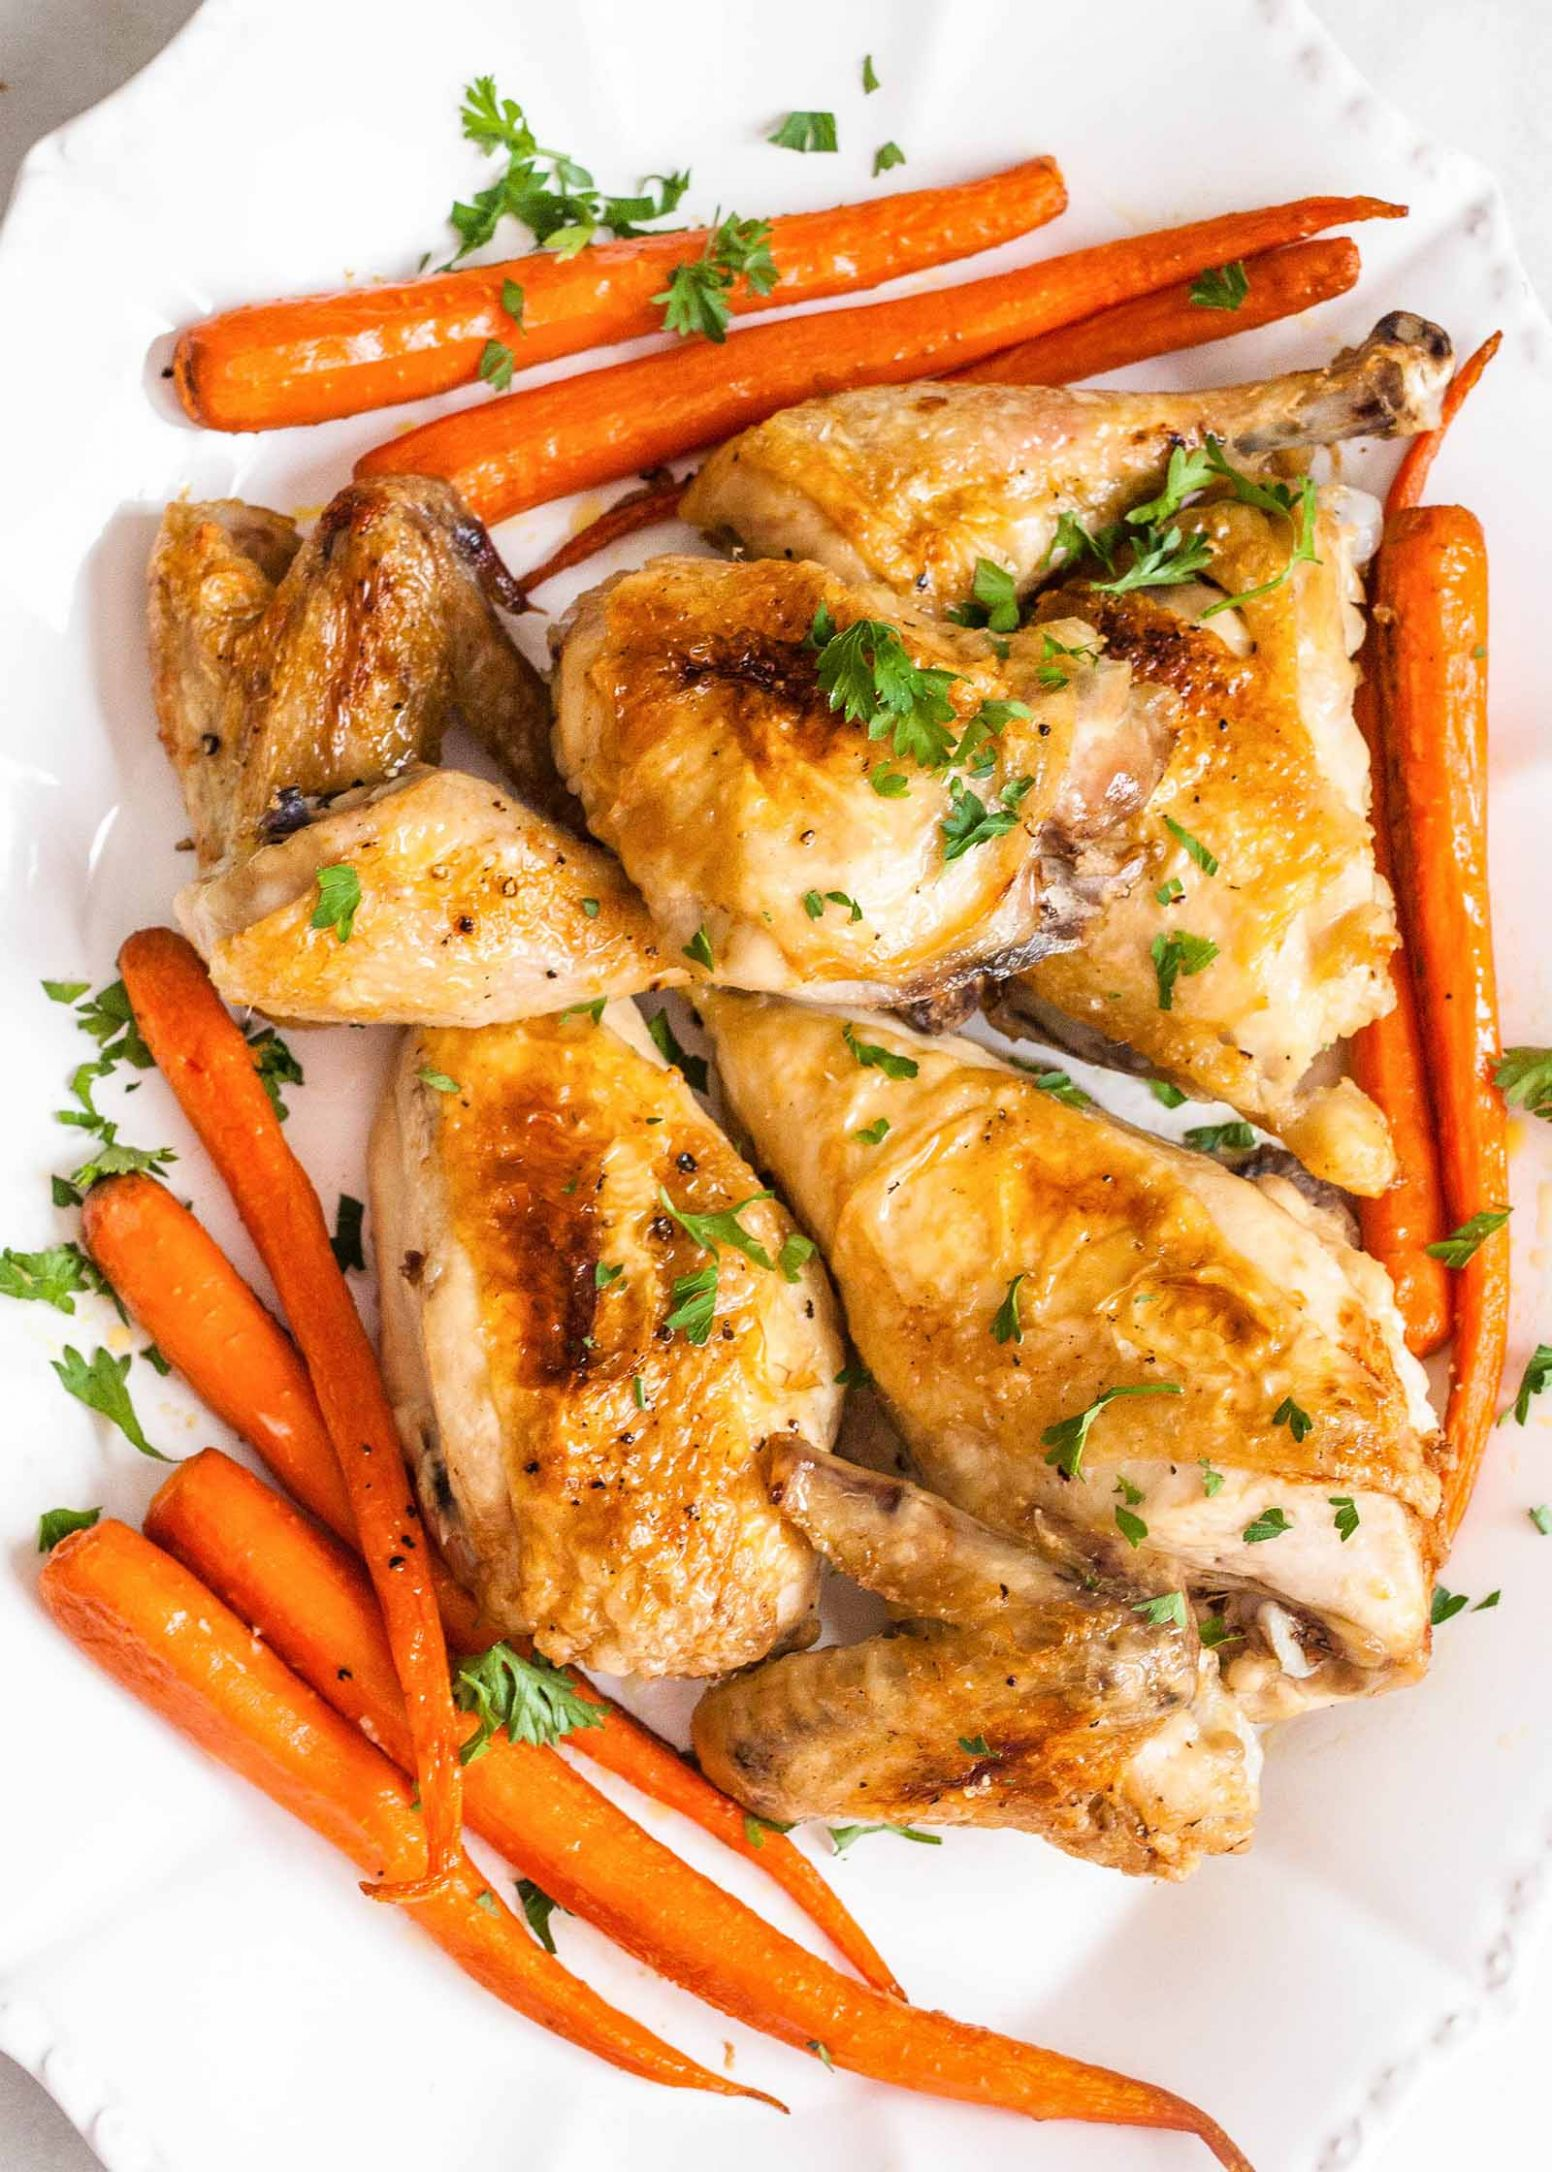 Classic Baked Chicken - Simple Recipes With Chicken